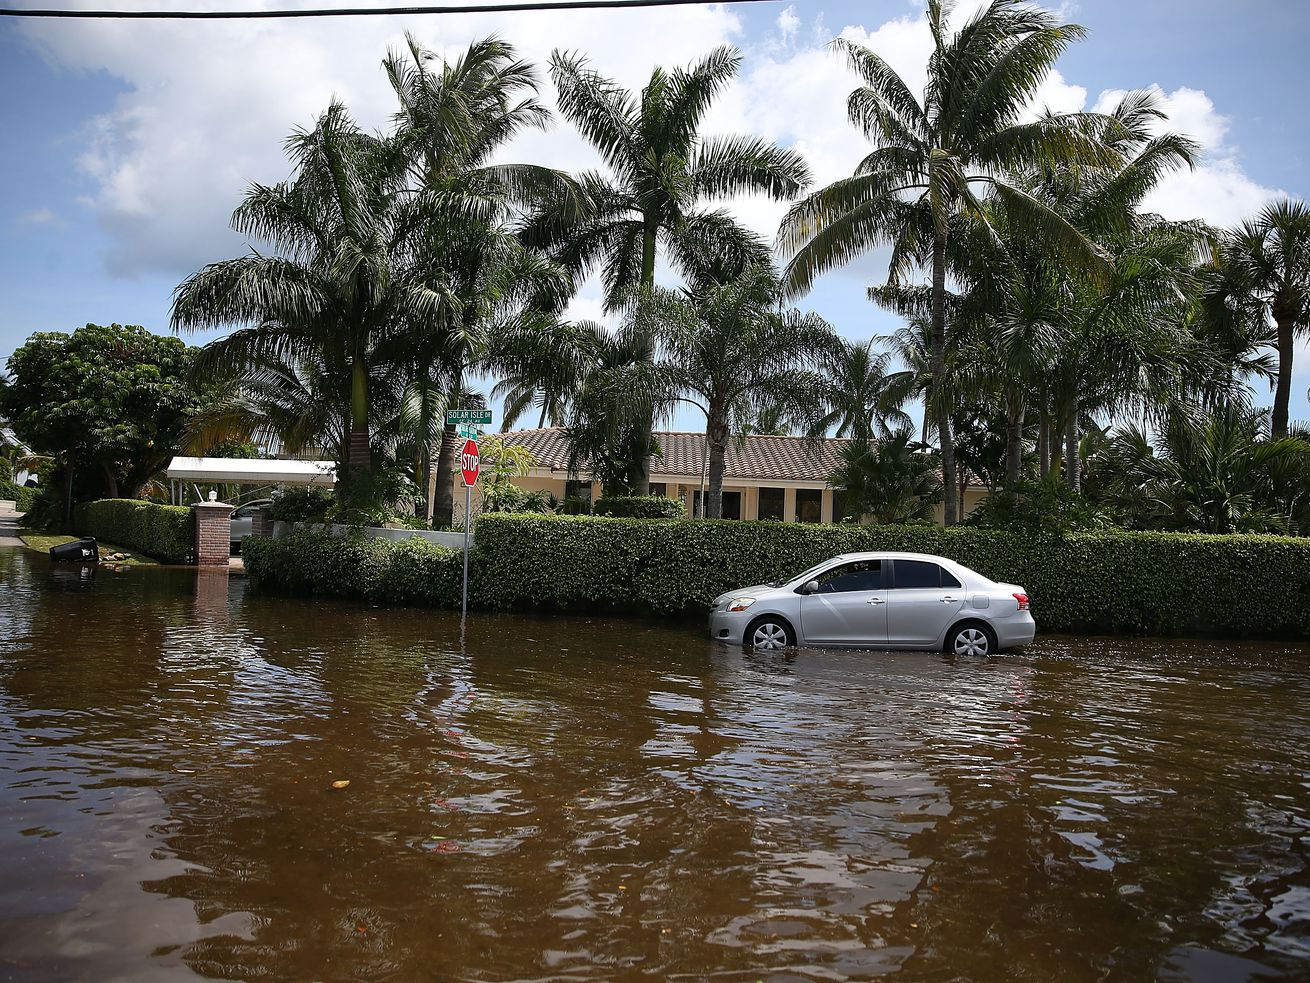 Coming crisis of coastal flooding: $1 trillion of real estate at risk by 2100